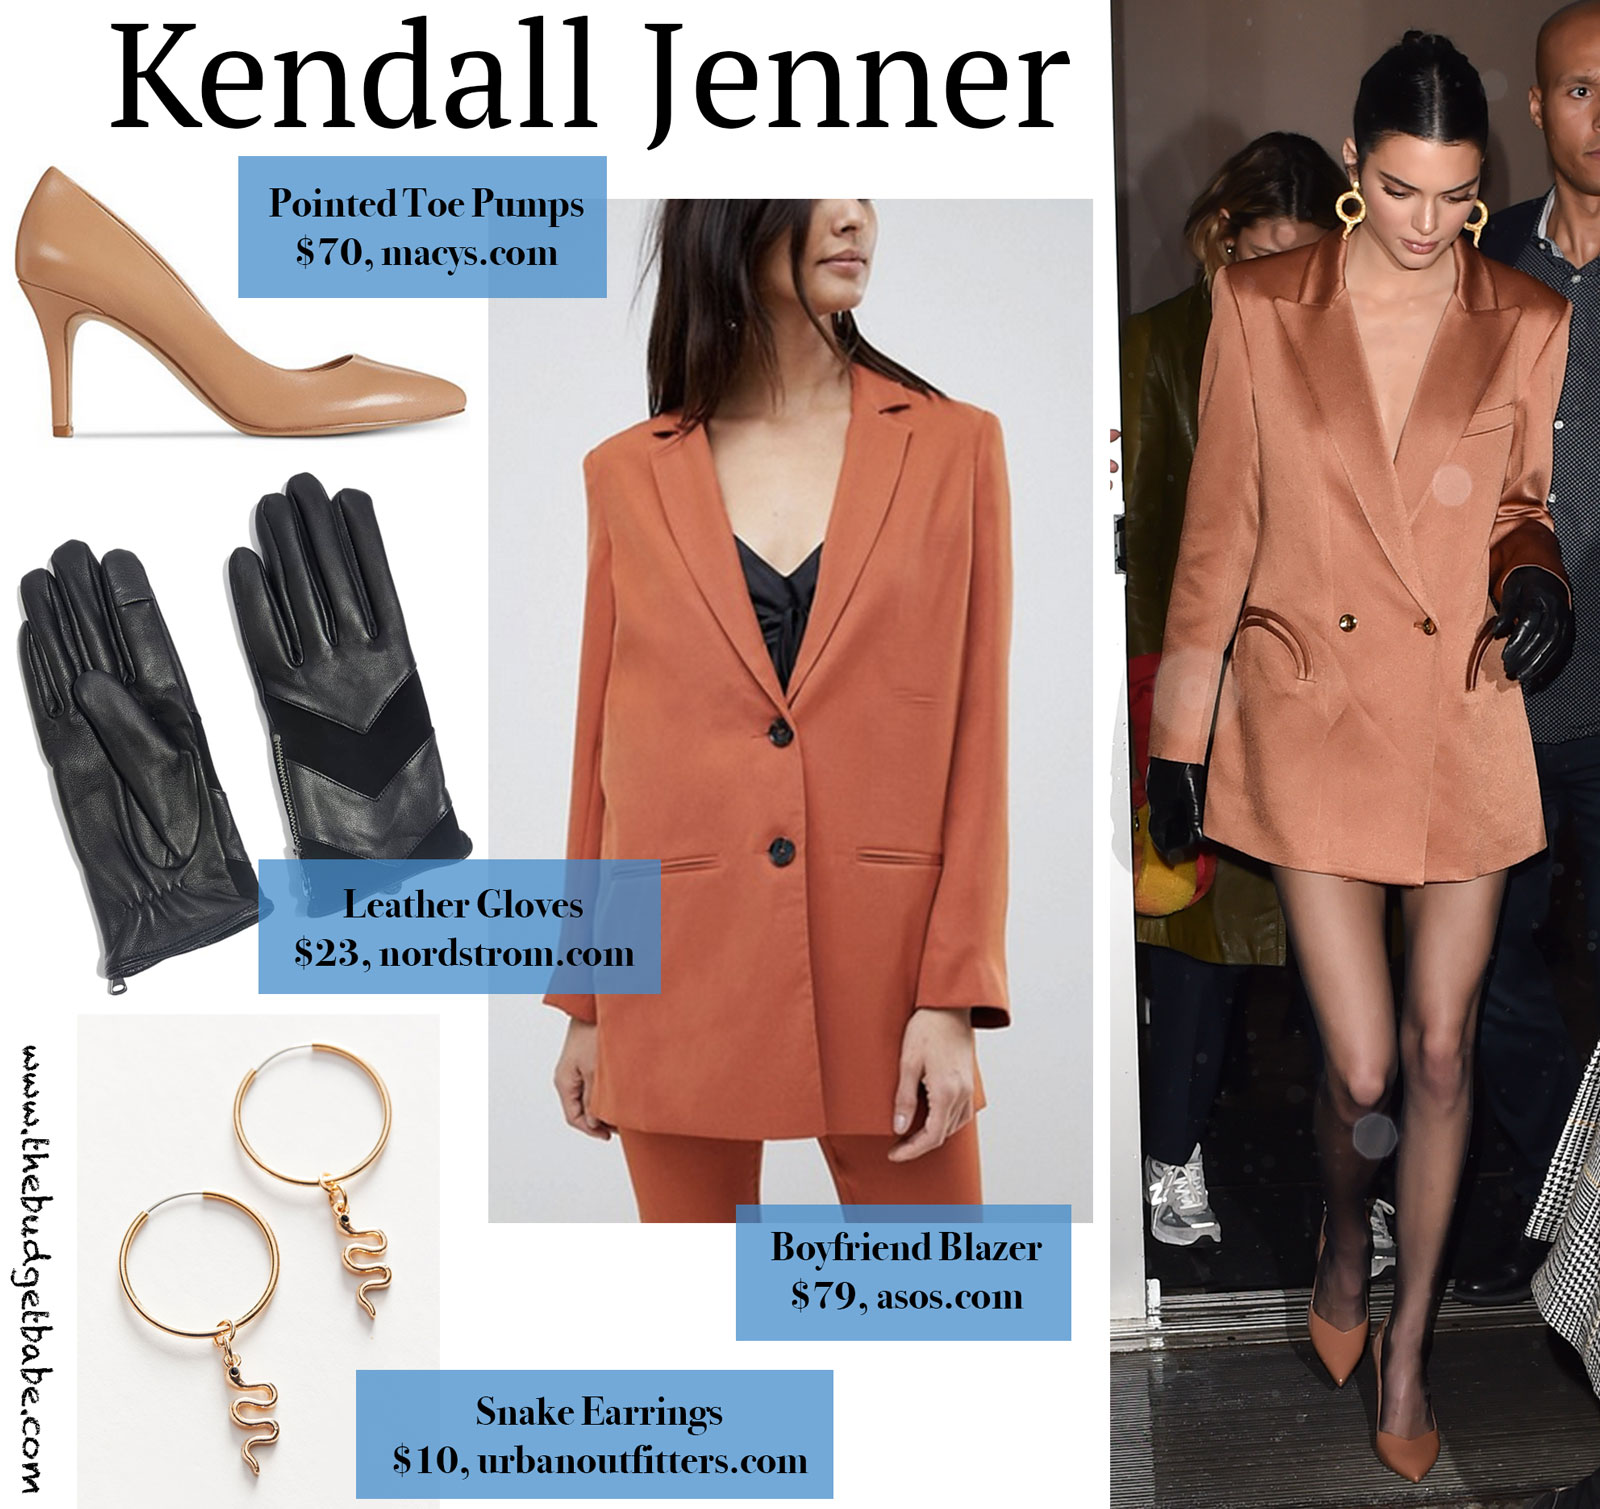 Kendall Jenner Blazer and Pumps Look for Less